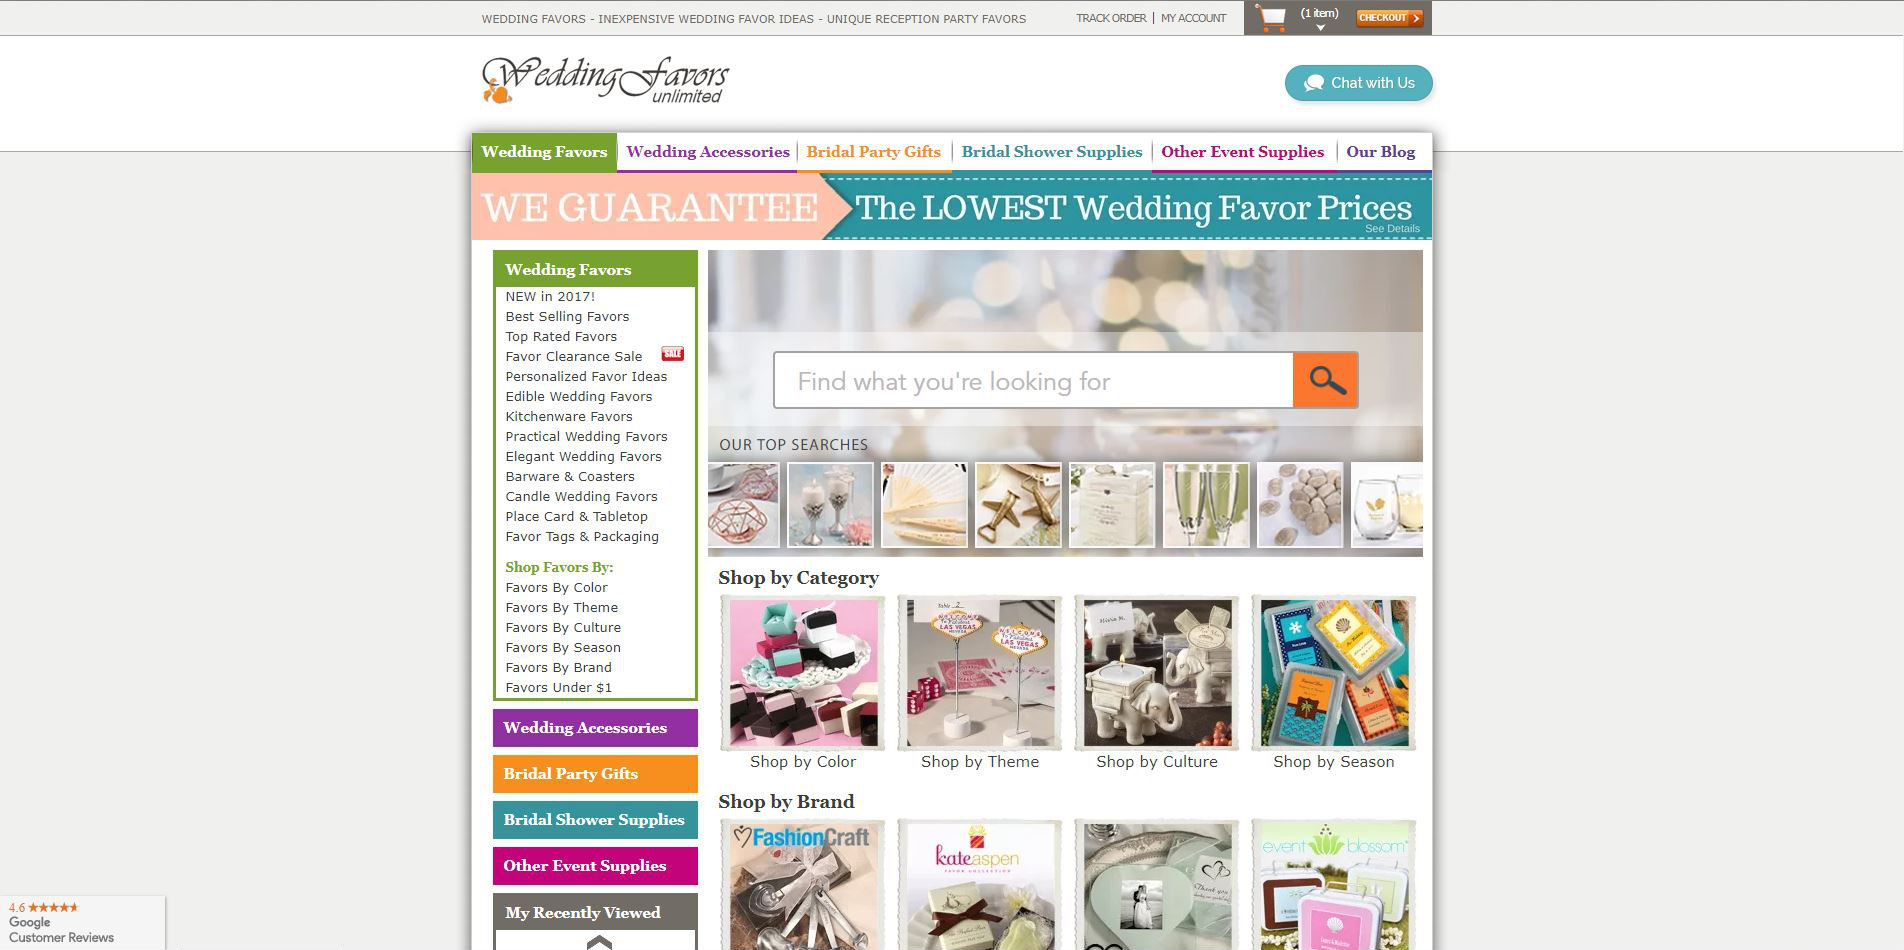 WeddingFavorsUnlimited.com Home Page